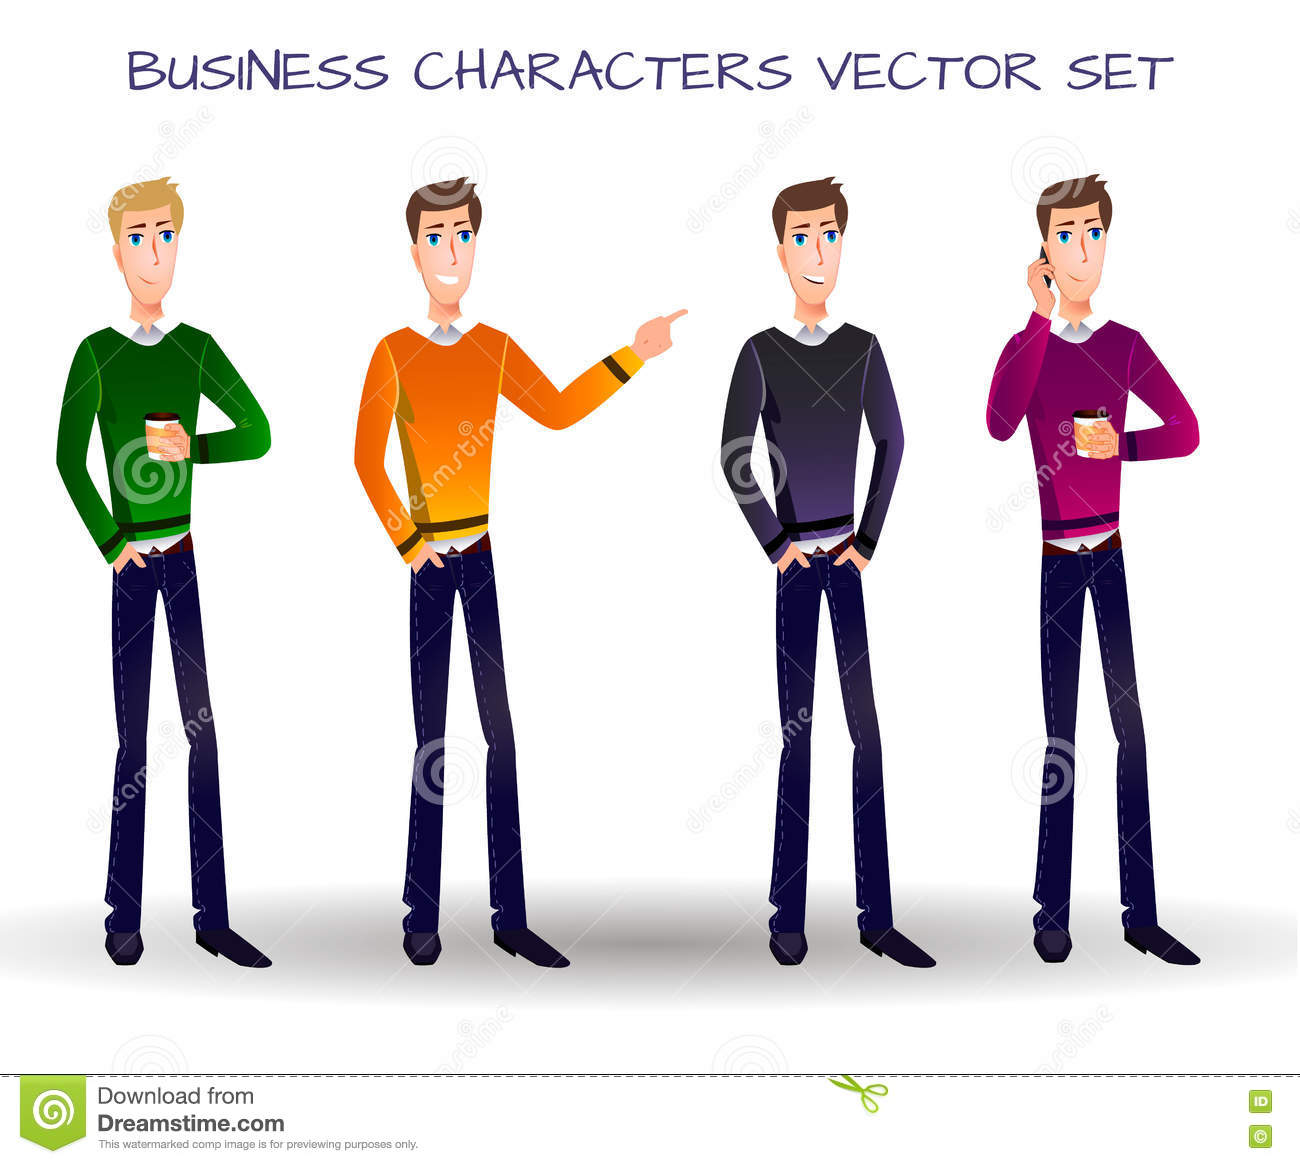 VECTOR set of cartoon business characters.